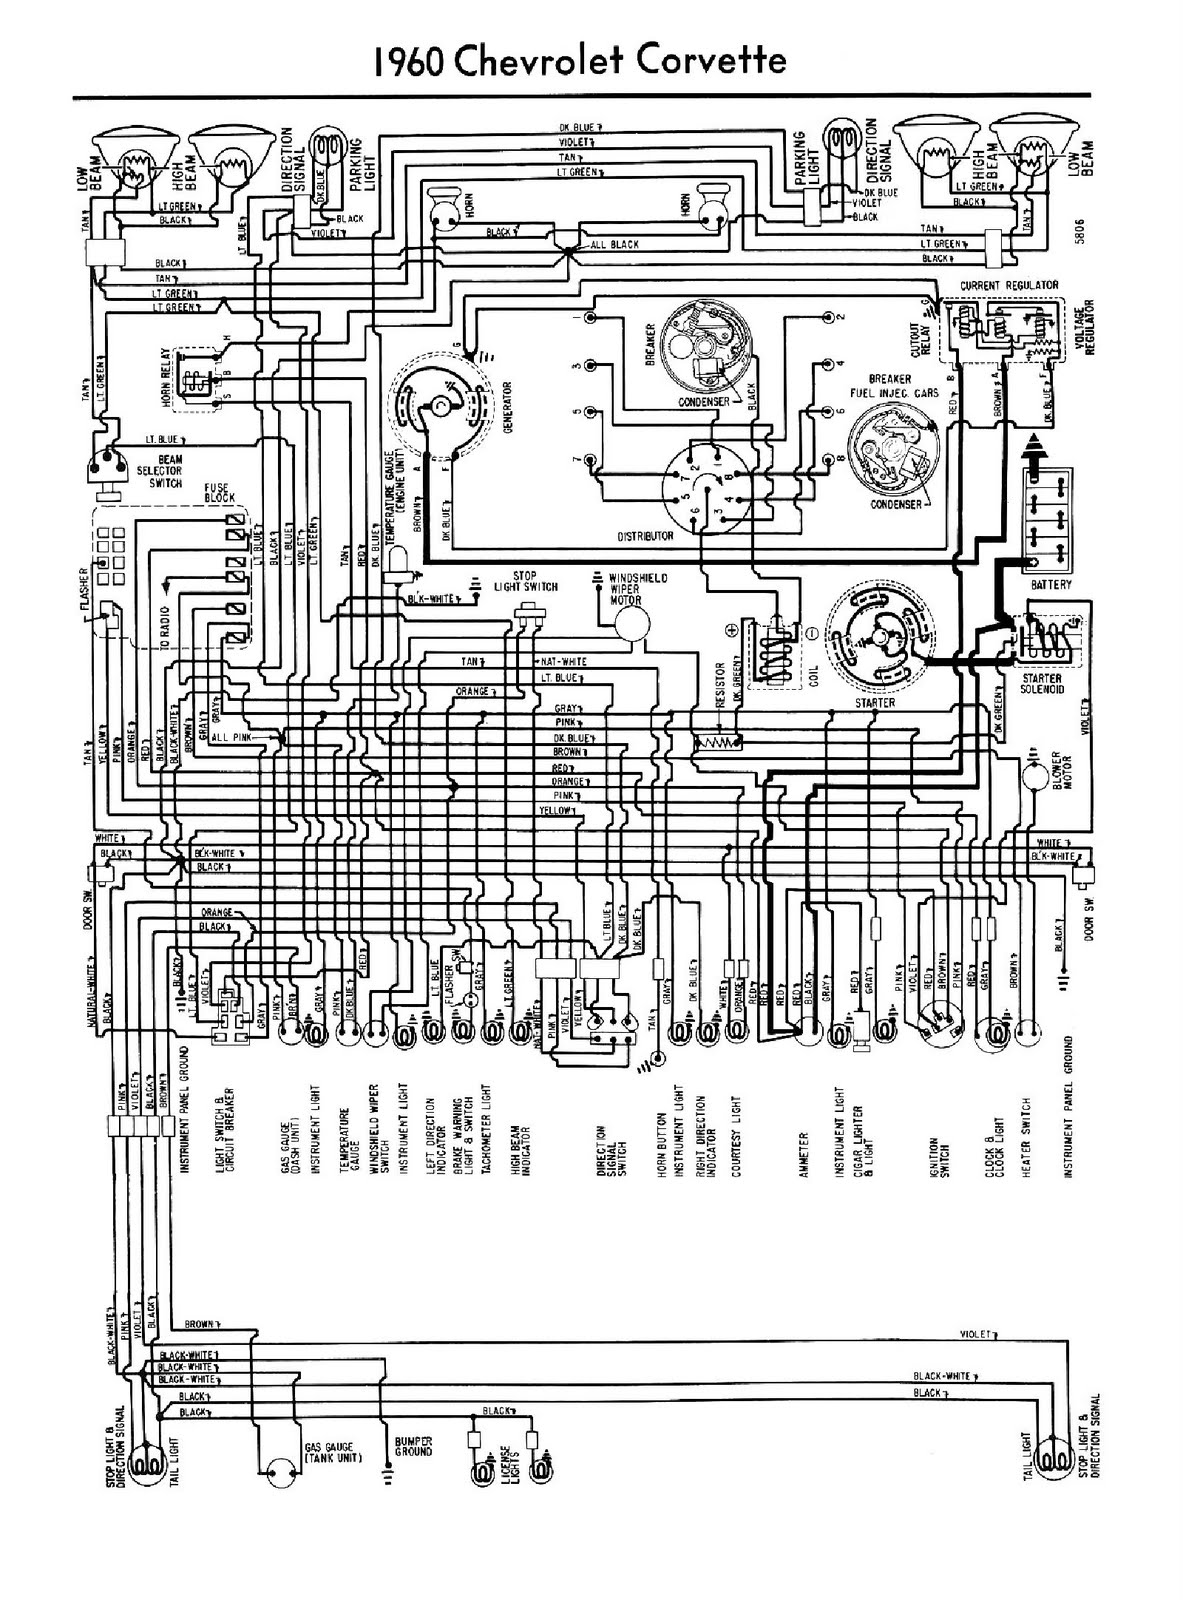 1960_Chevrolet_Corvette_Wiring free auto wiring diagram 1960 chevrolet corvette wiring diagram 1960 corvette wiring diagram at aneh.co